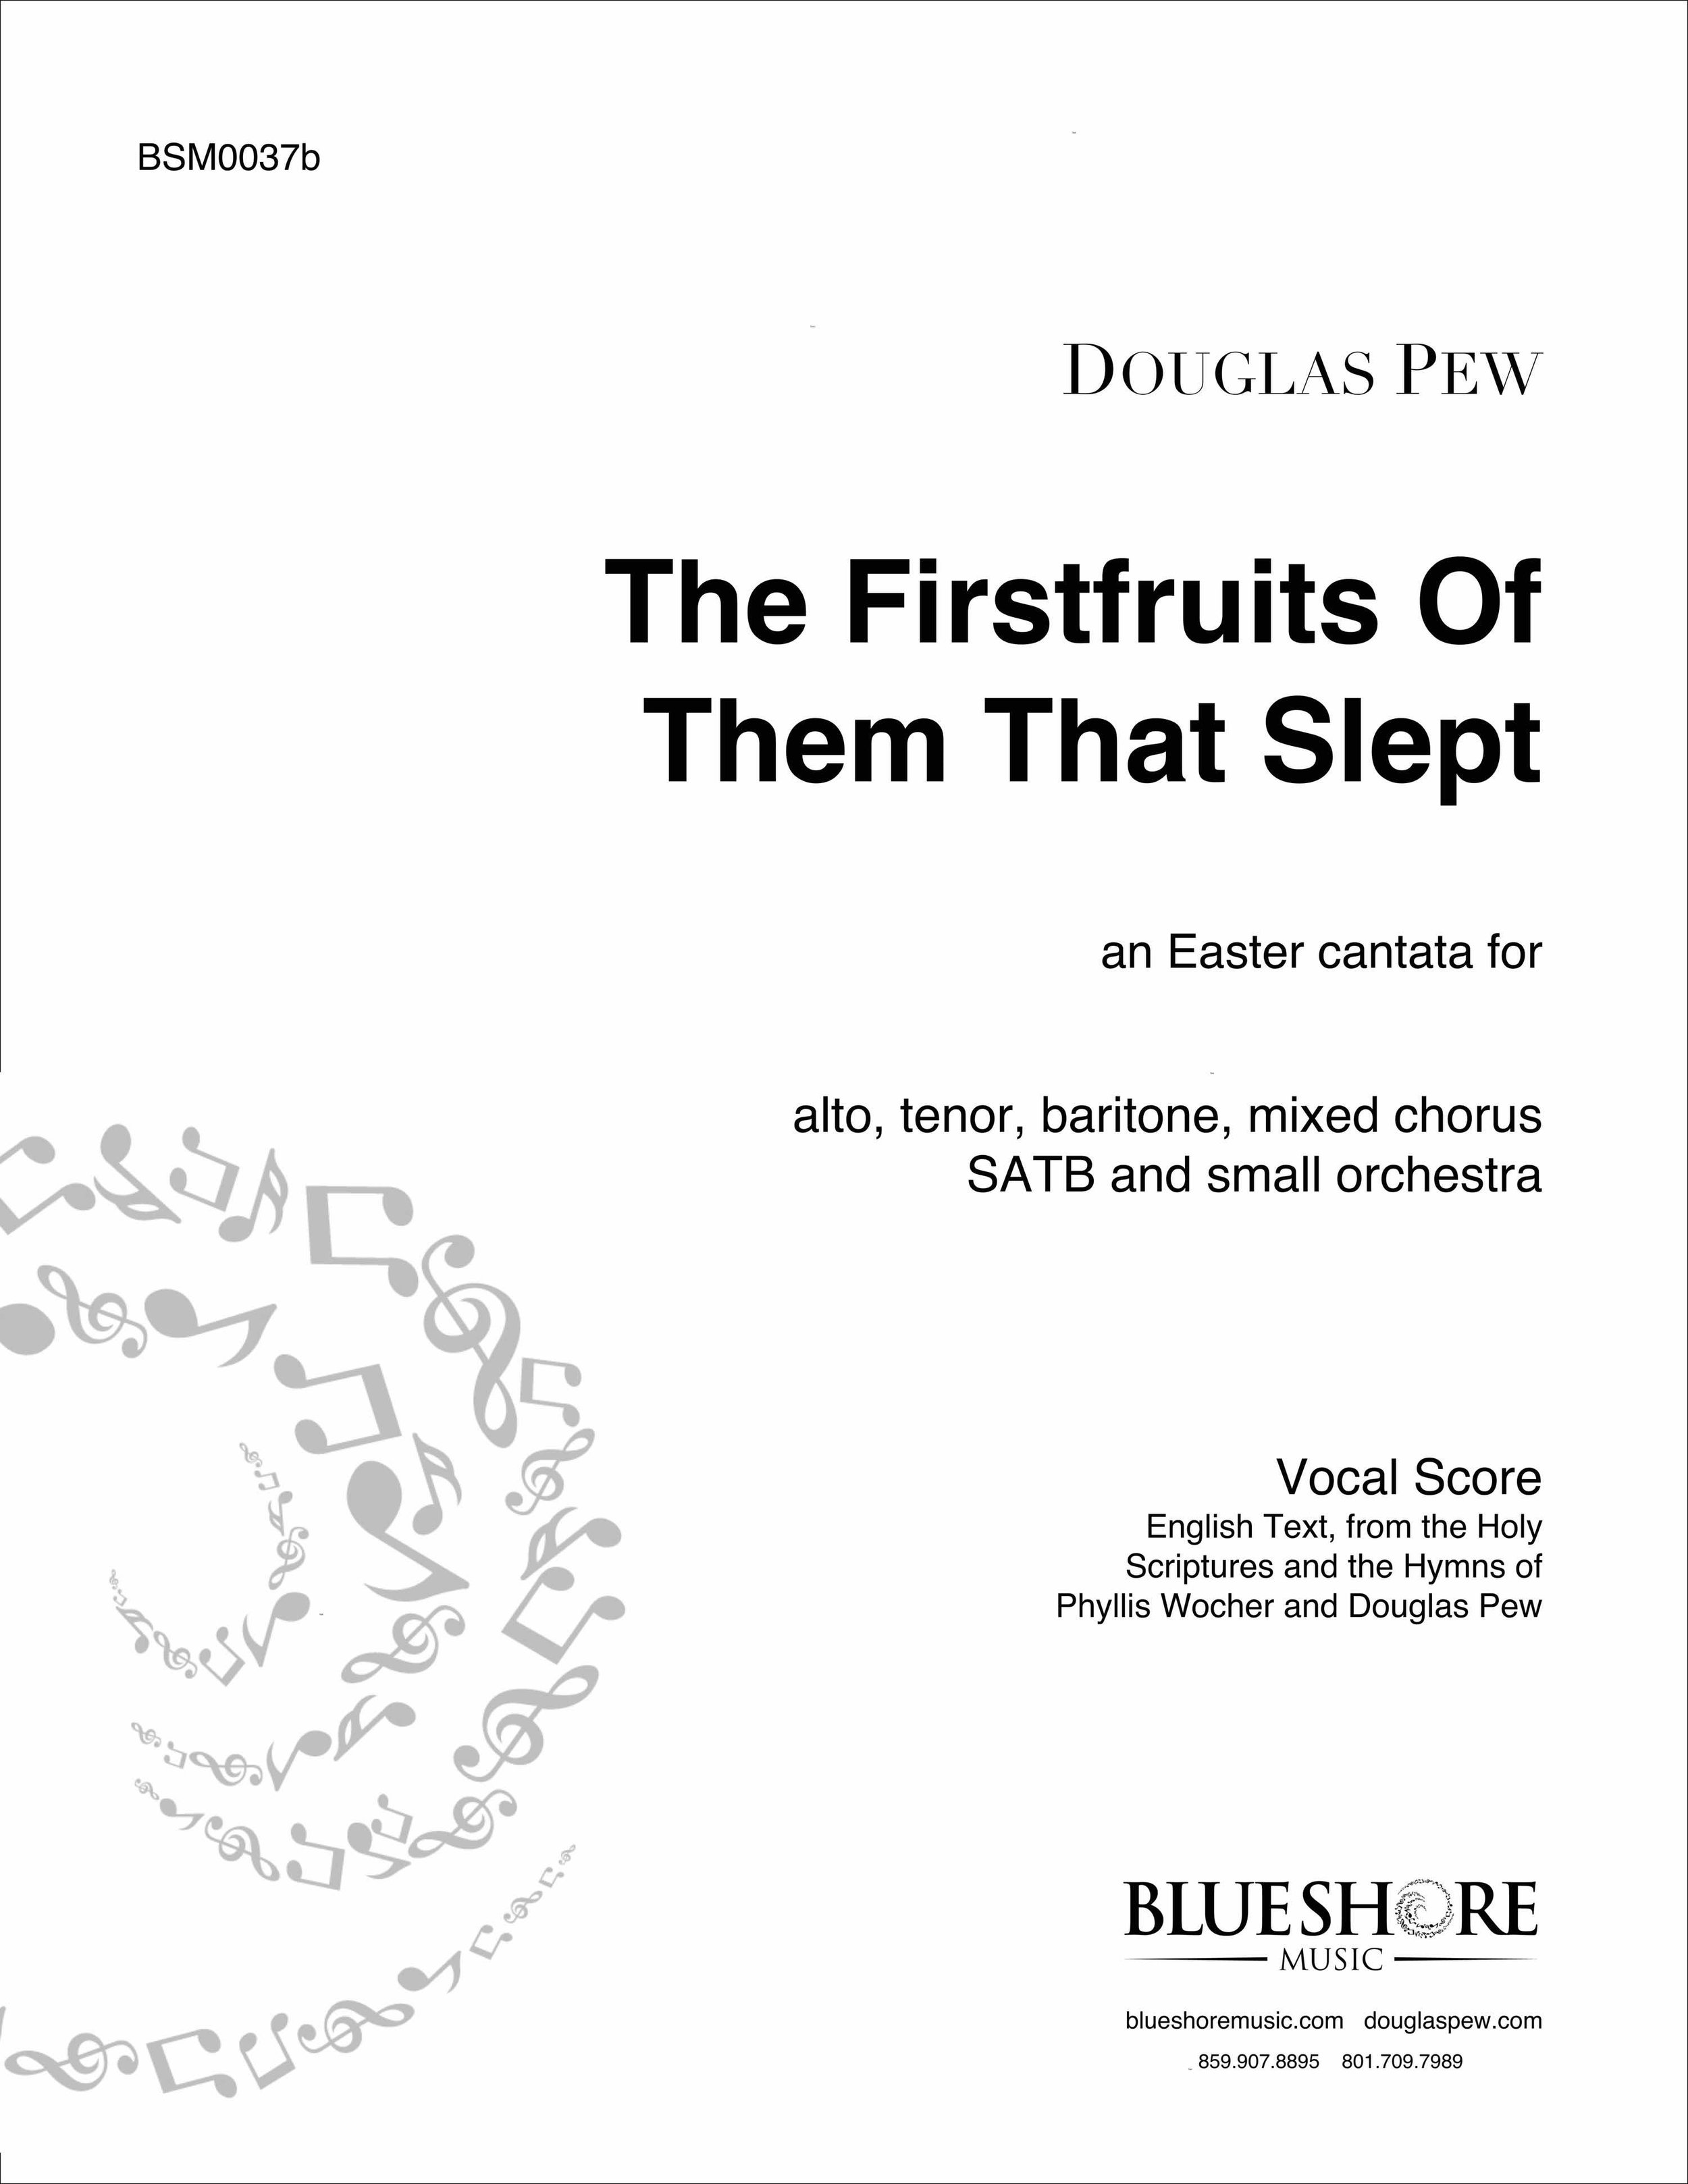 The Firstfruits Of Them That Slept , Easter Cantata for Soloists, SATB, and Small Orchestra